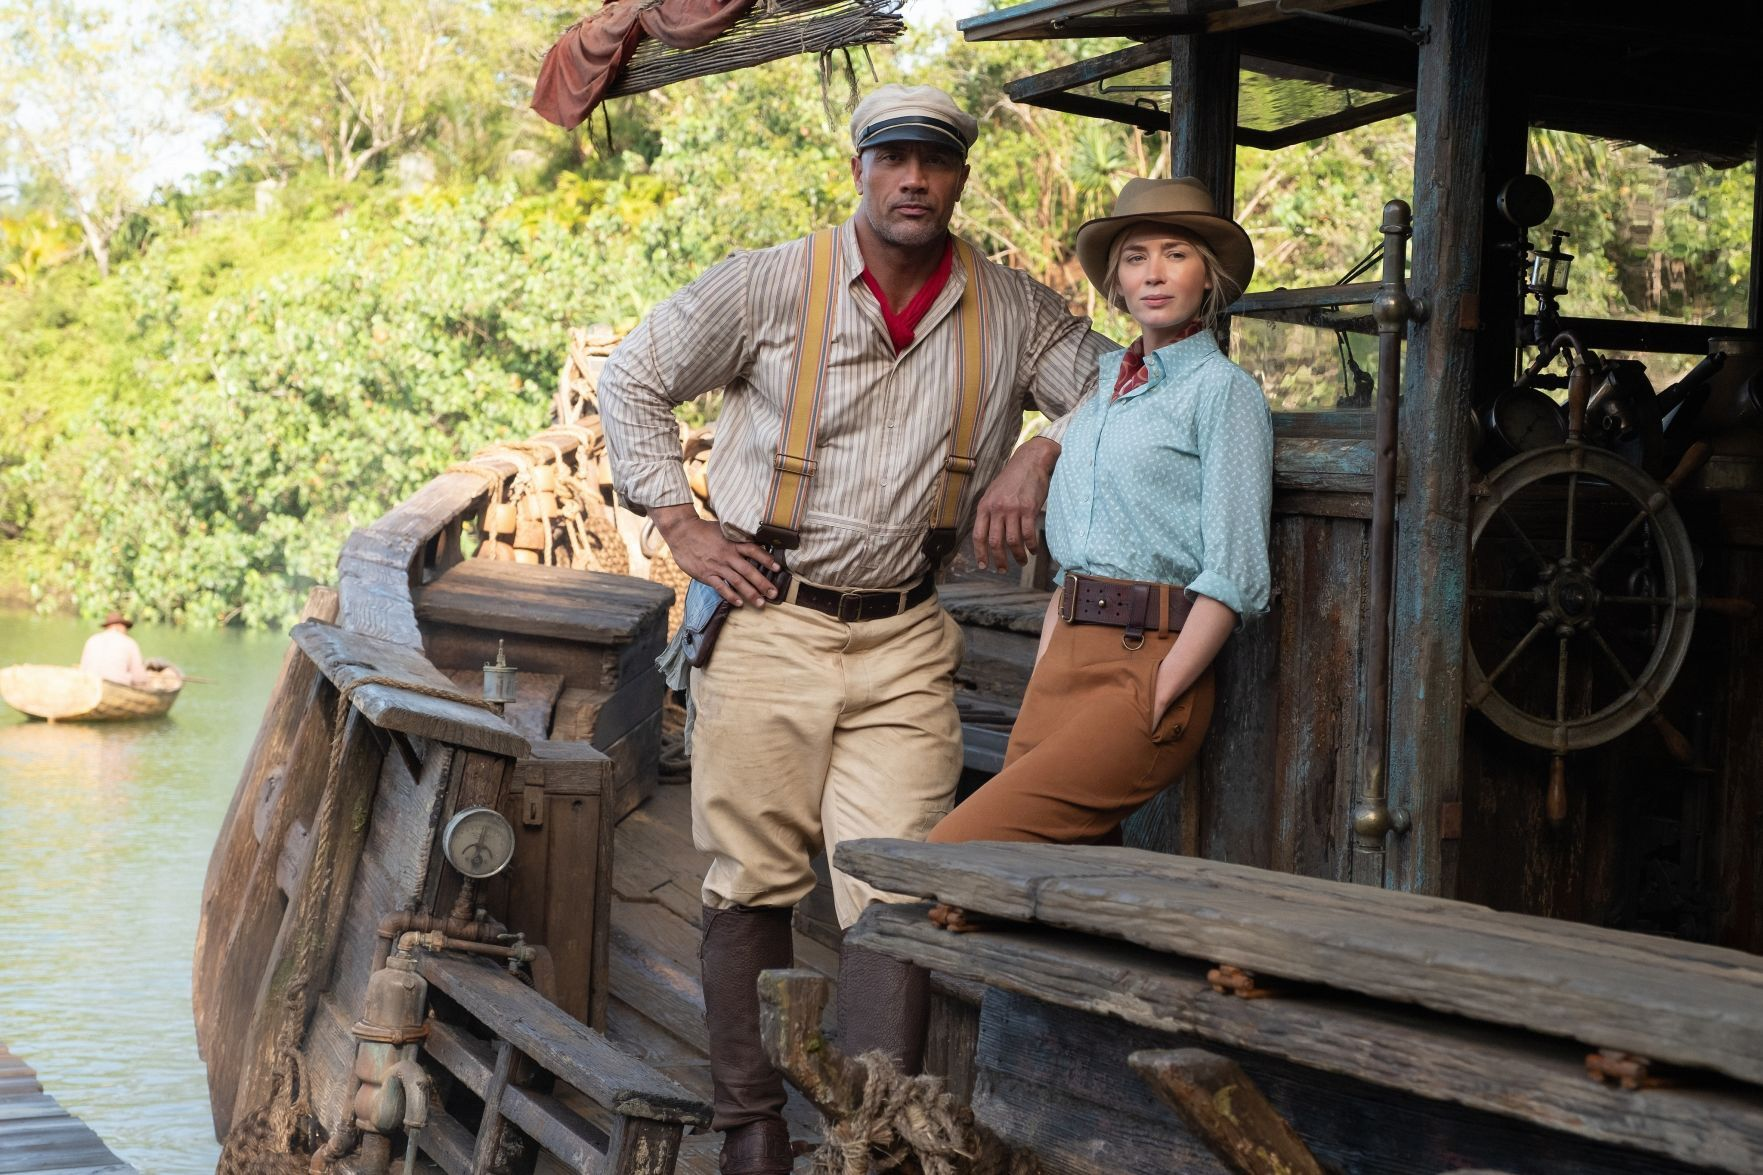 'Jungle Cruise' a hearty slice of cheesy humor that rides a fun, action-filled wave